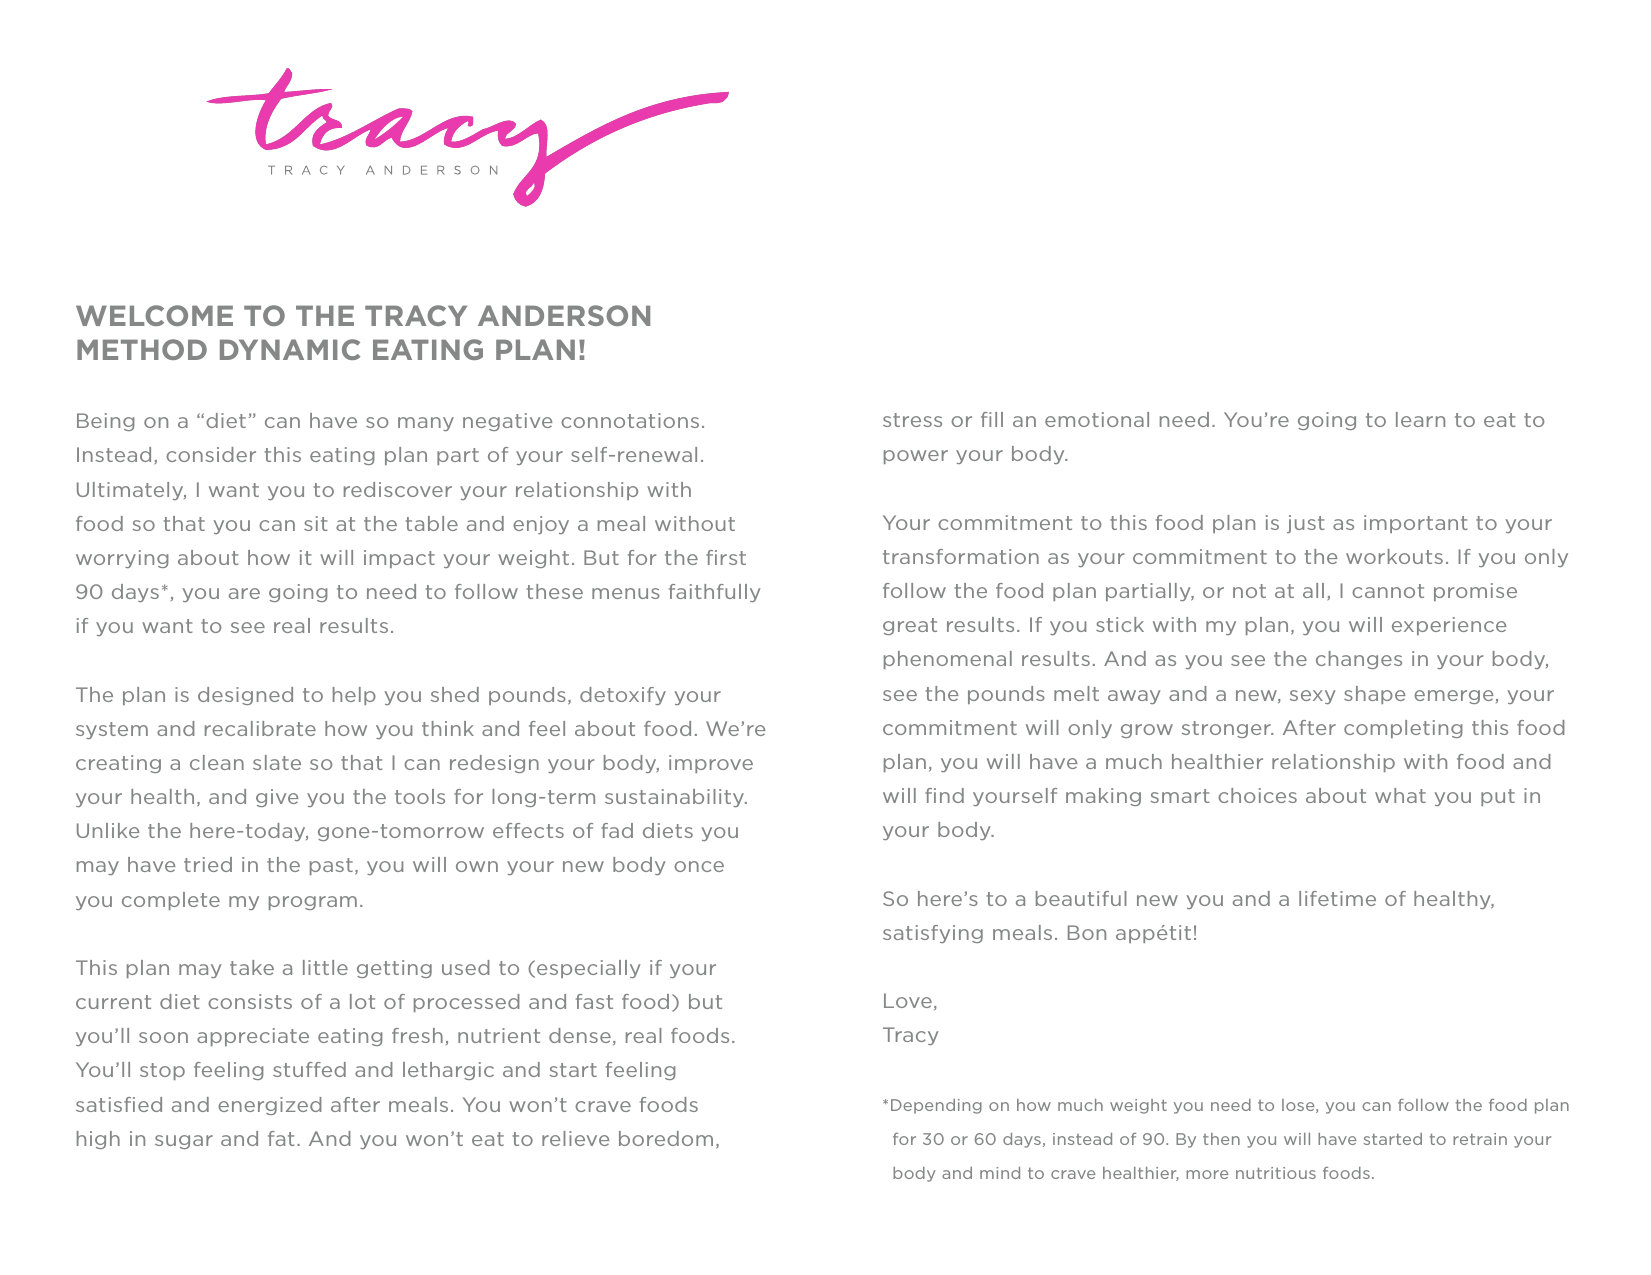 welcome to the tracy anderson method dynamic eating plan!